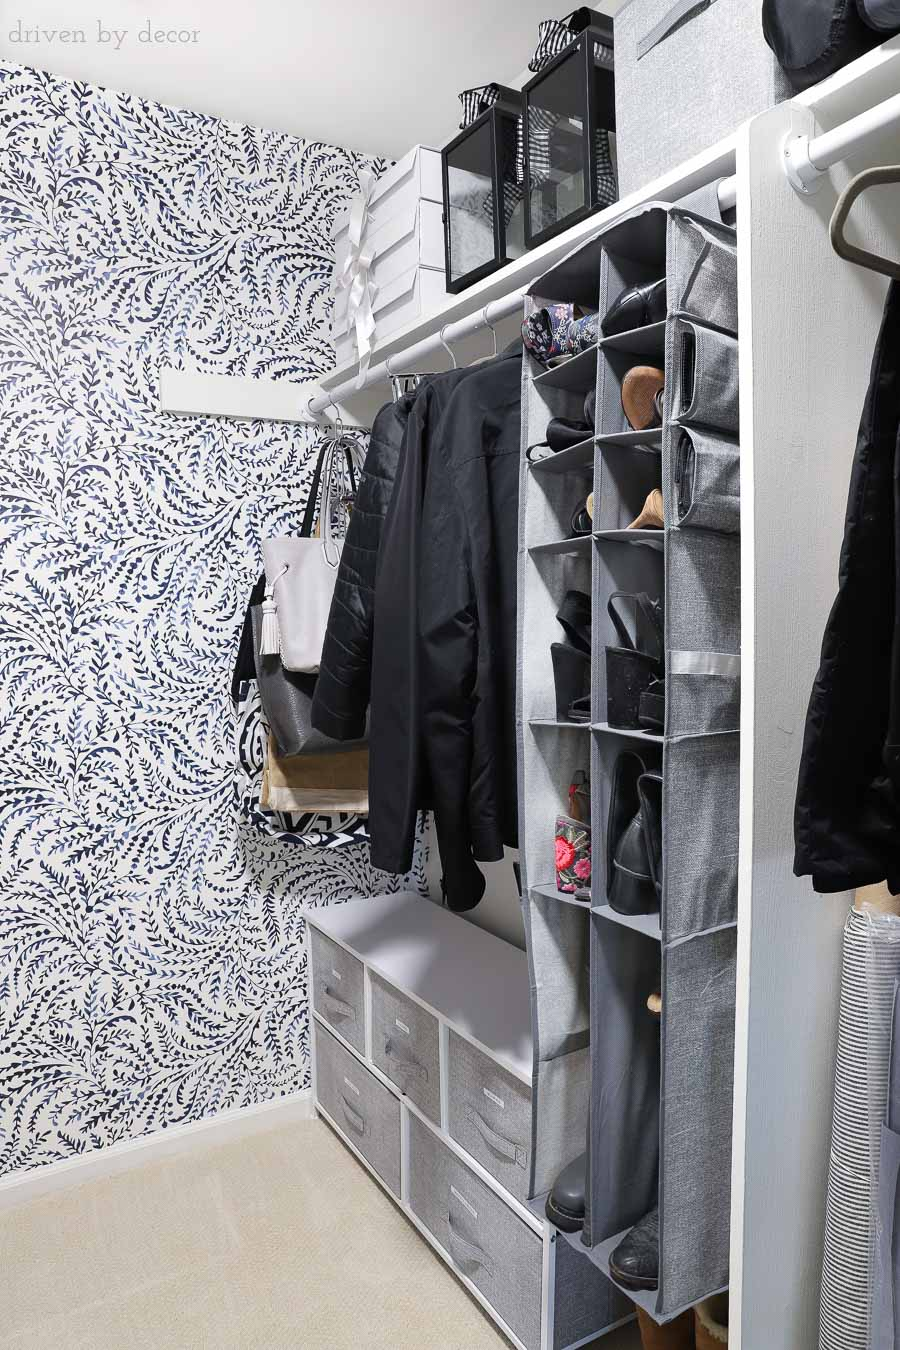 Loving all of the closet organization ideas in this post! Ideas for organizing and storing your shoes, purses, and more!